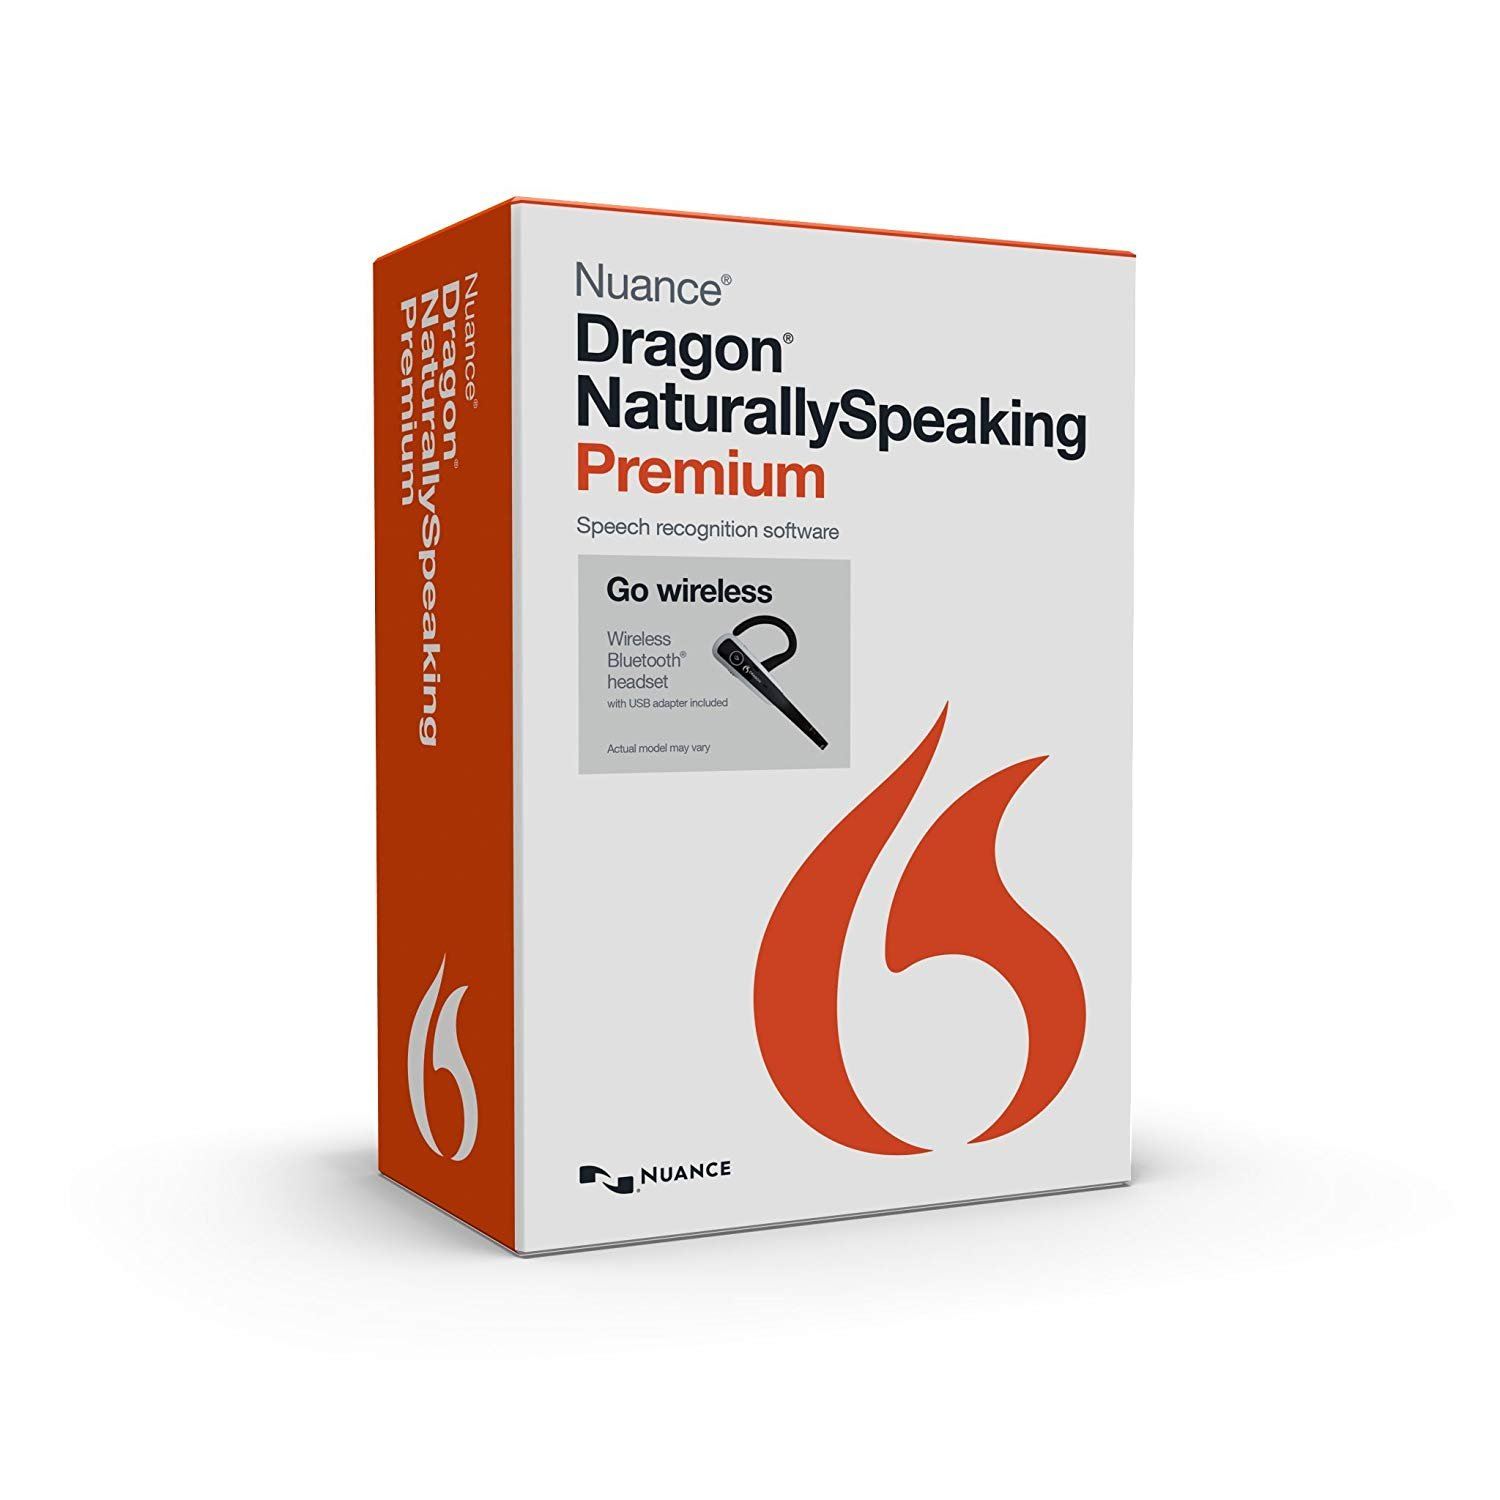 Nuance Dragon NaturallySpeaking Premium 13.0 with Dragon Bluetooth Wireless Headset (Discontinued) by Nuance Dragon